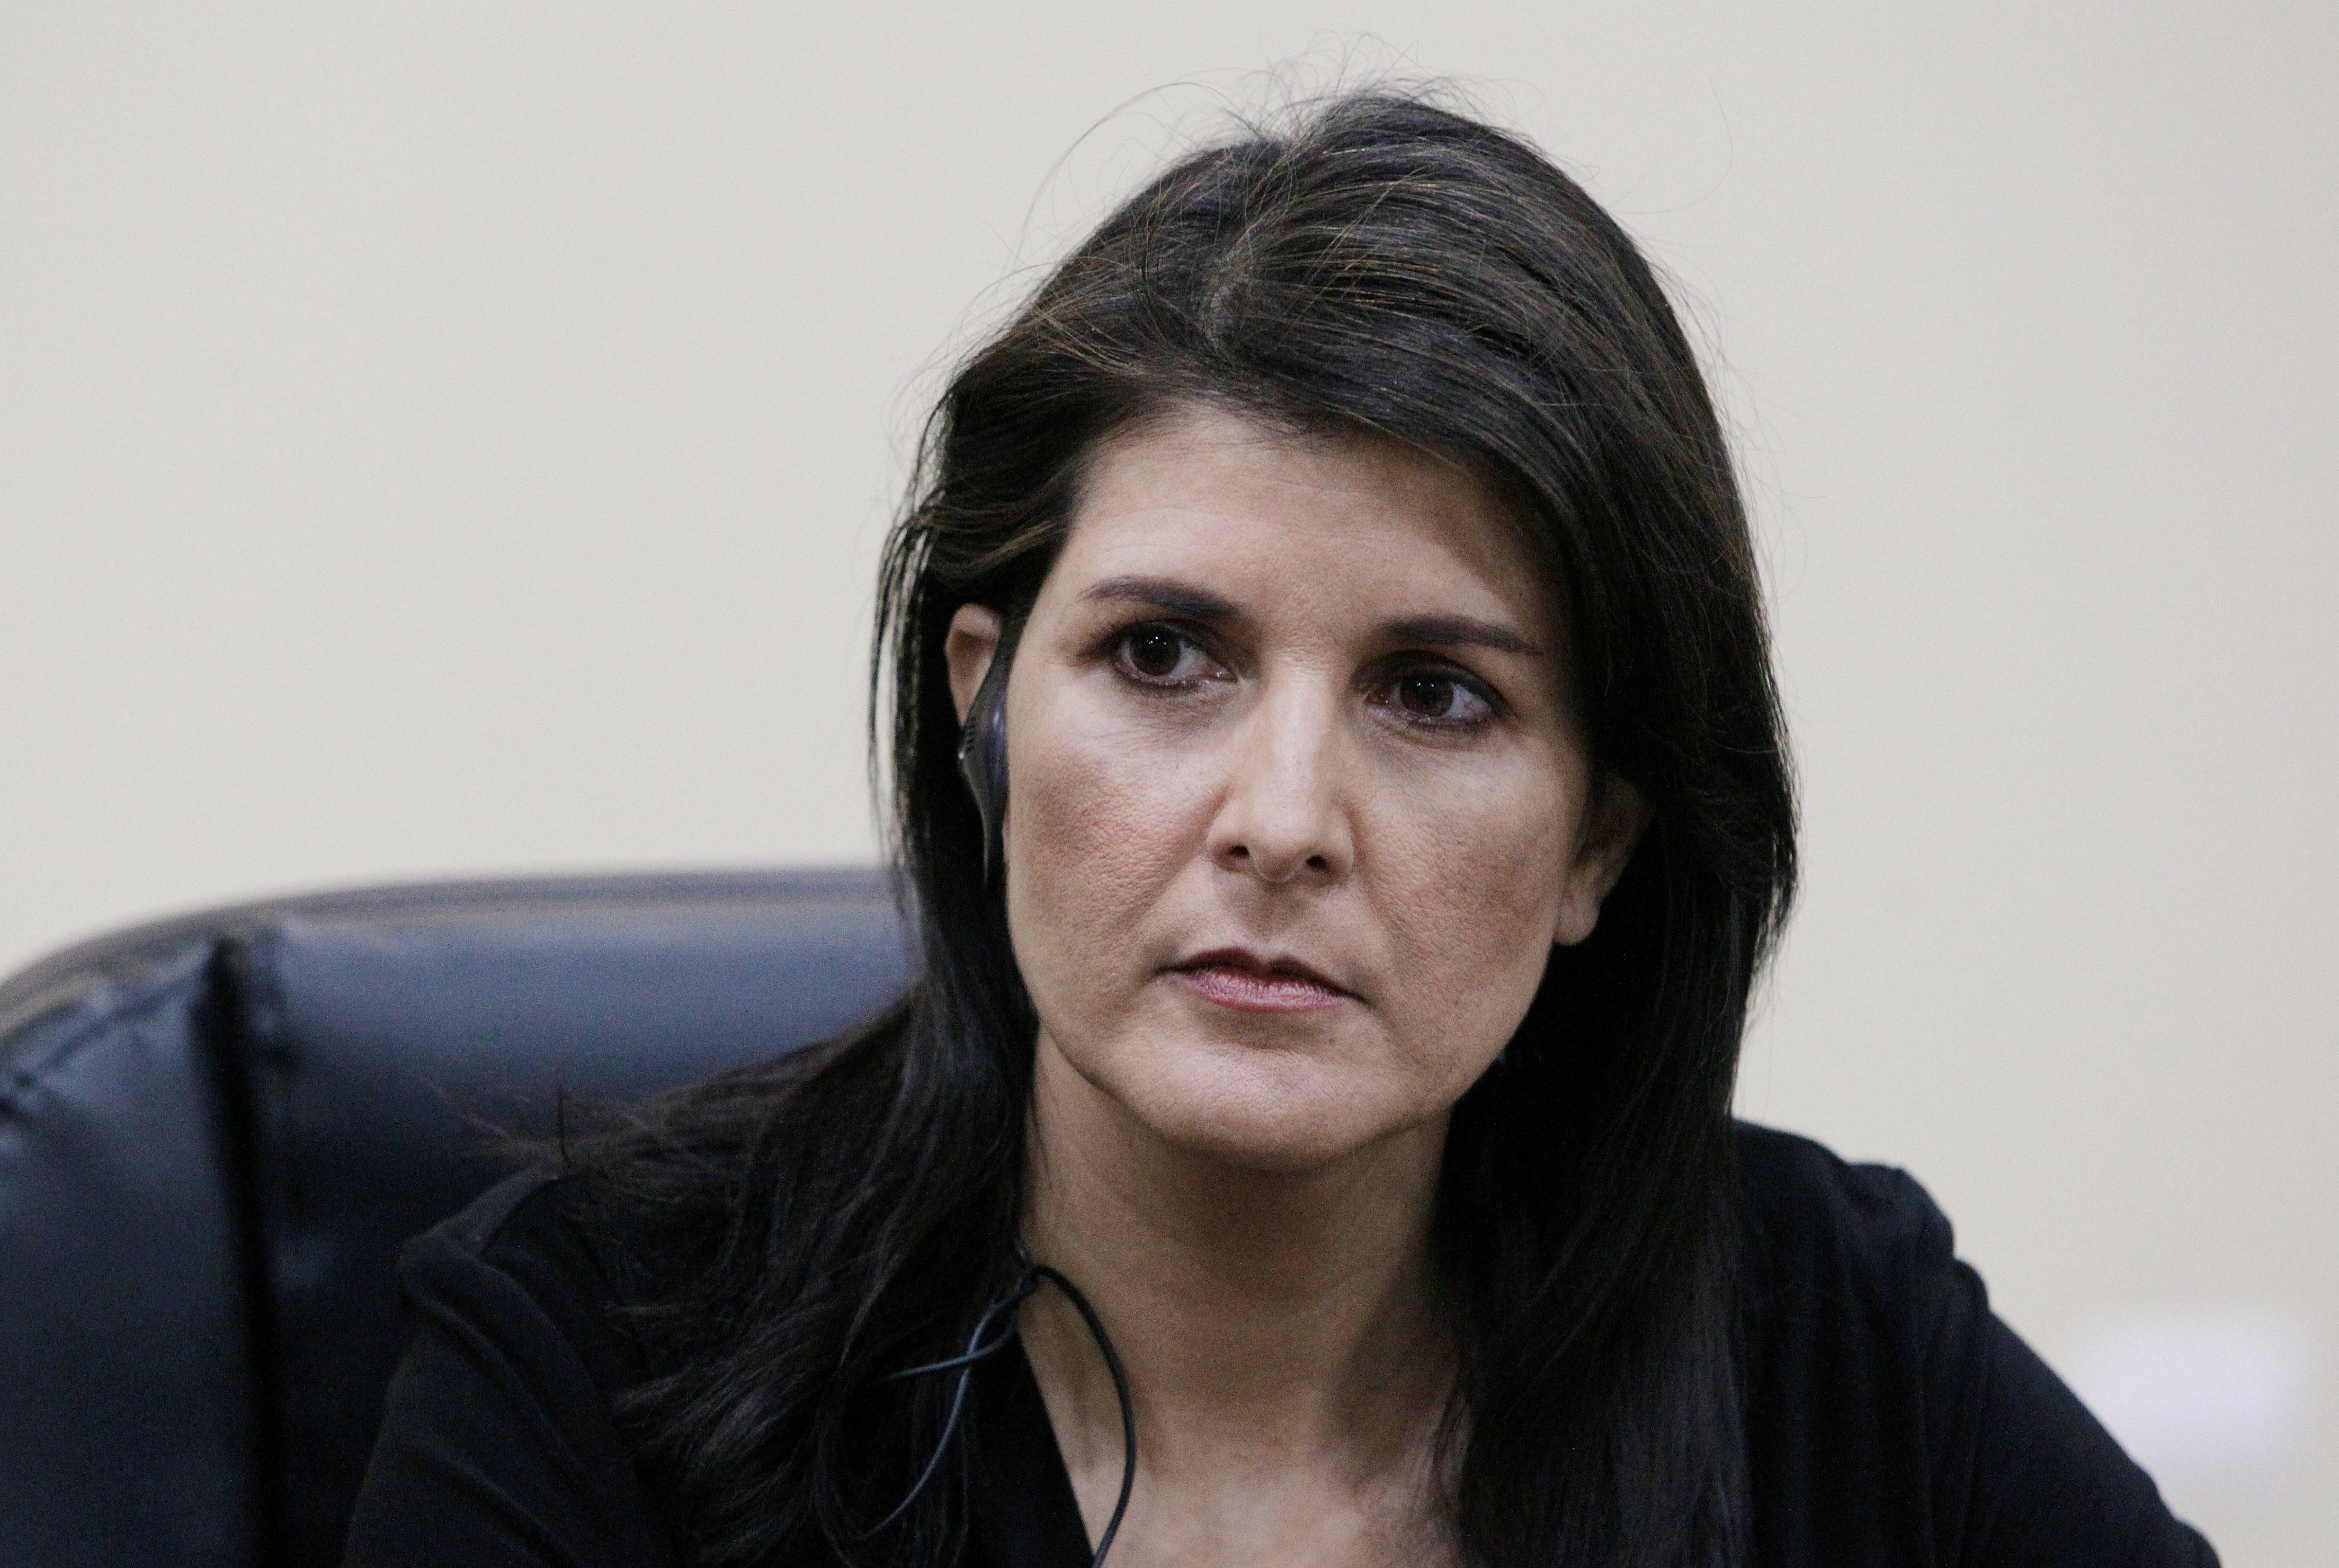 USA ambassador to UN Nikki Haley resigns